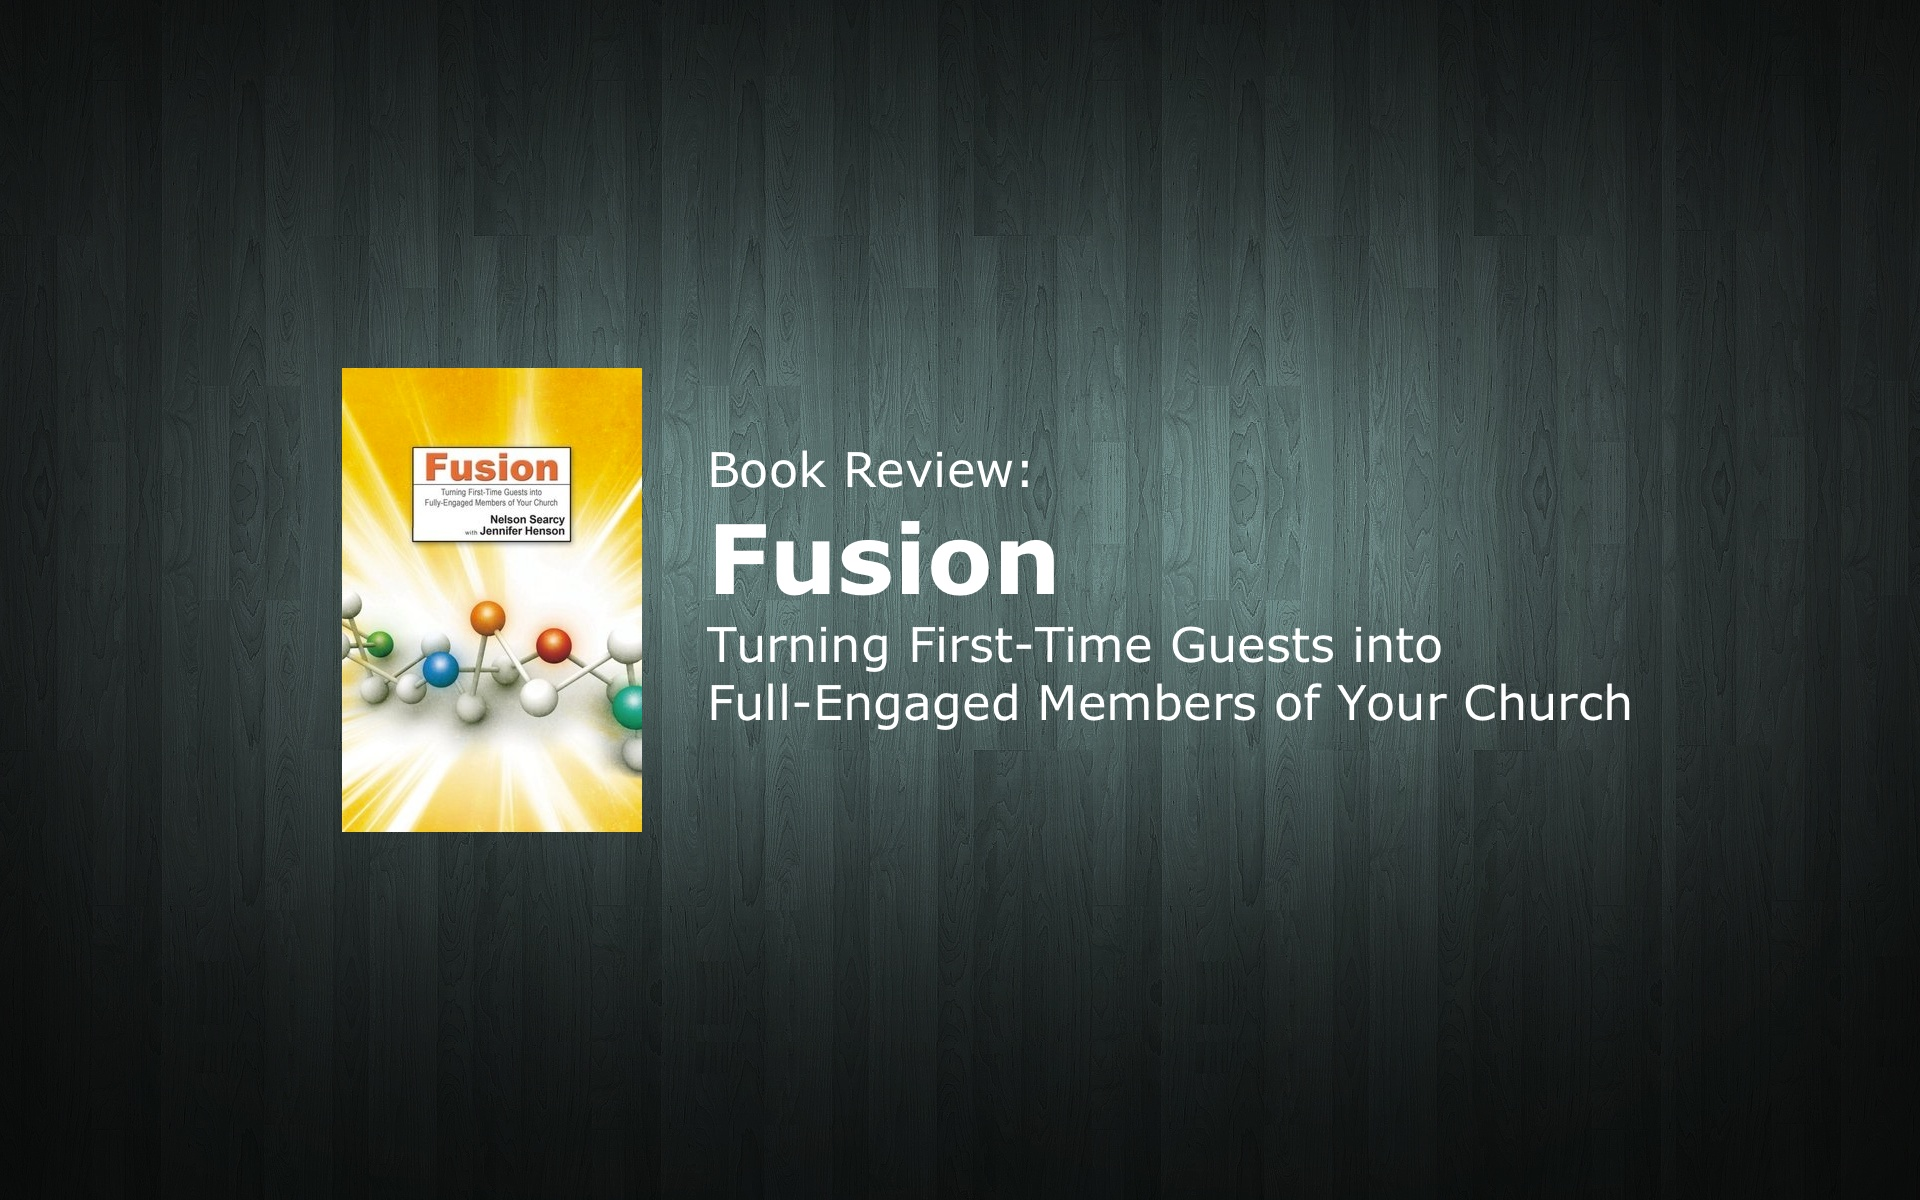 Fusion (book review)